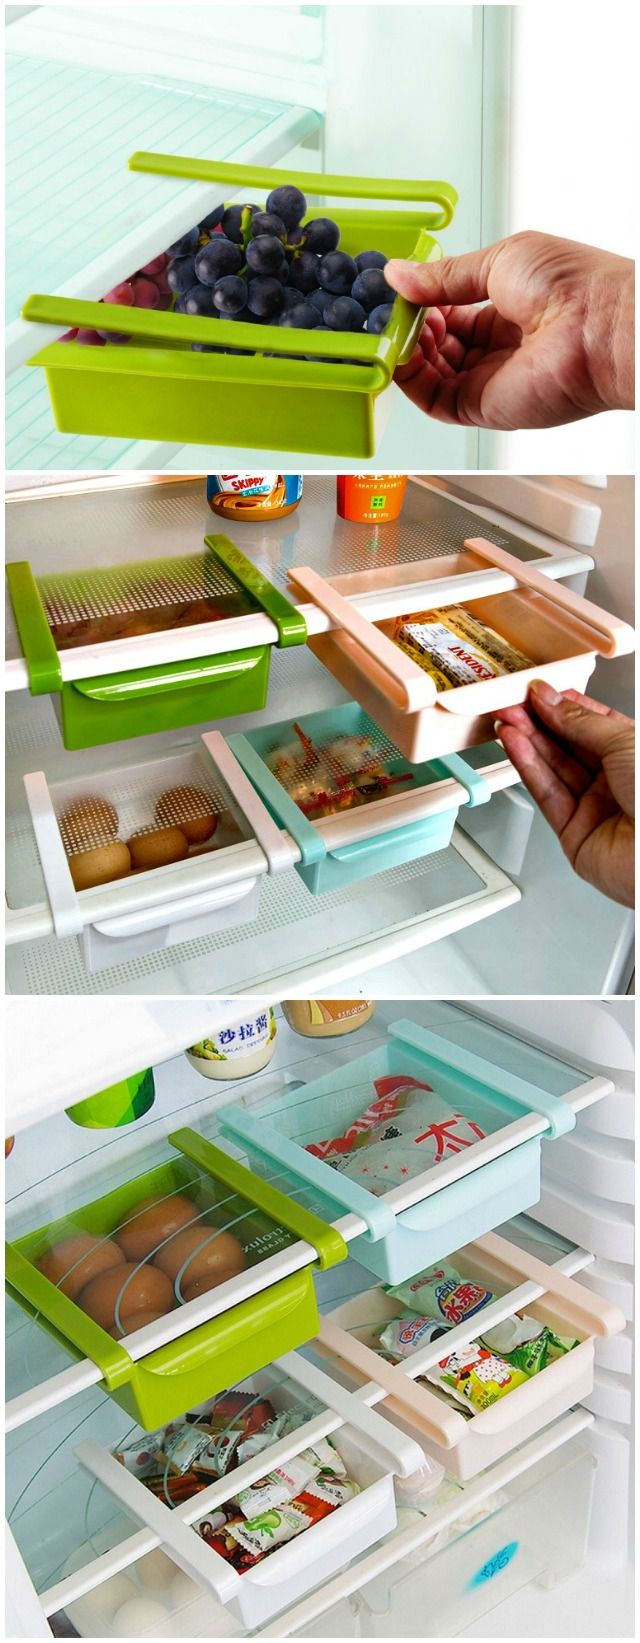 Maximize your storage space with the Refrigerator Sliding Drawer. Large enough to